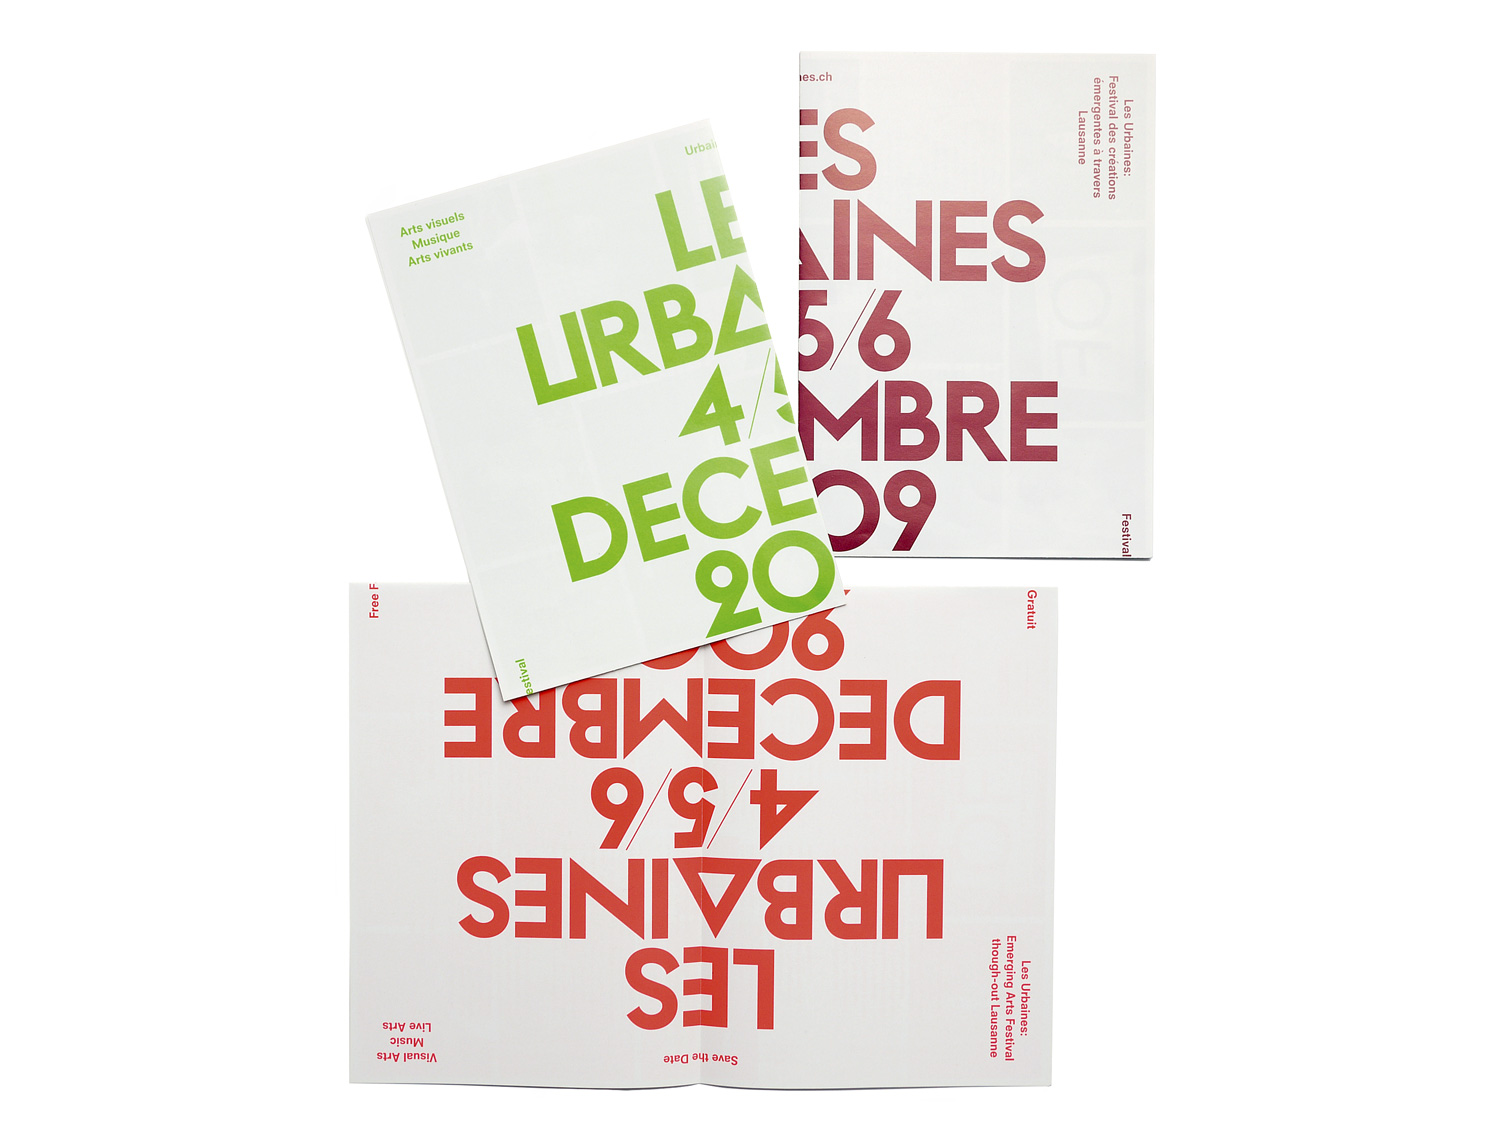 14/31 – Les Urbaines with Jonathan Hares